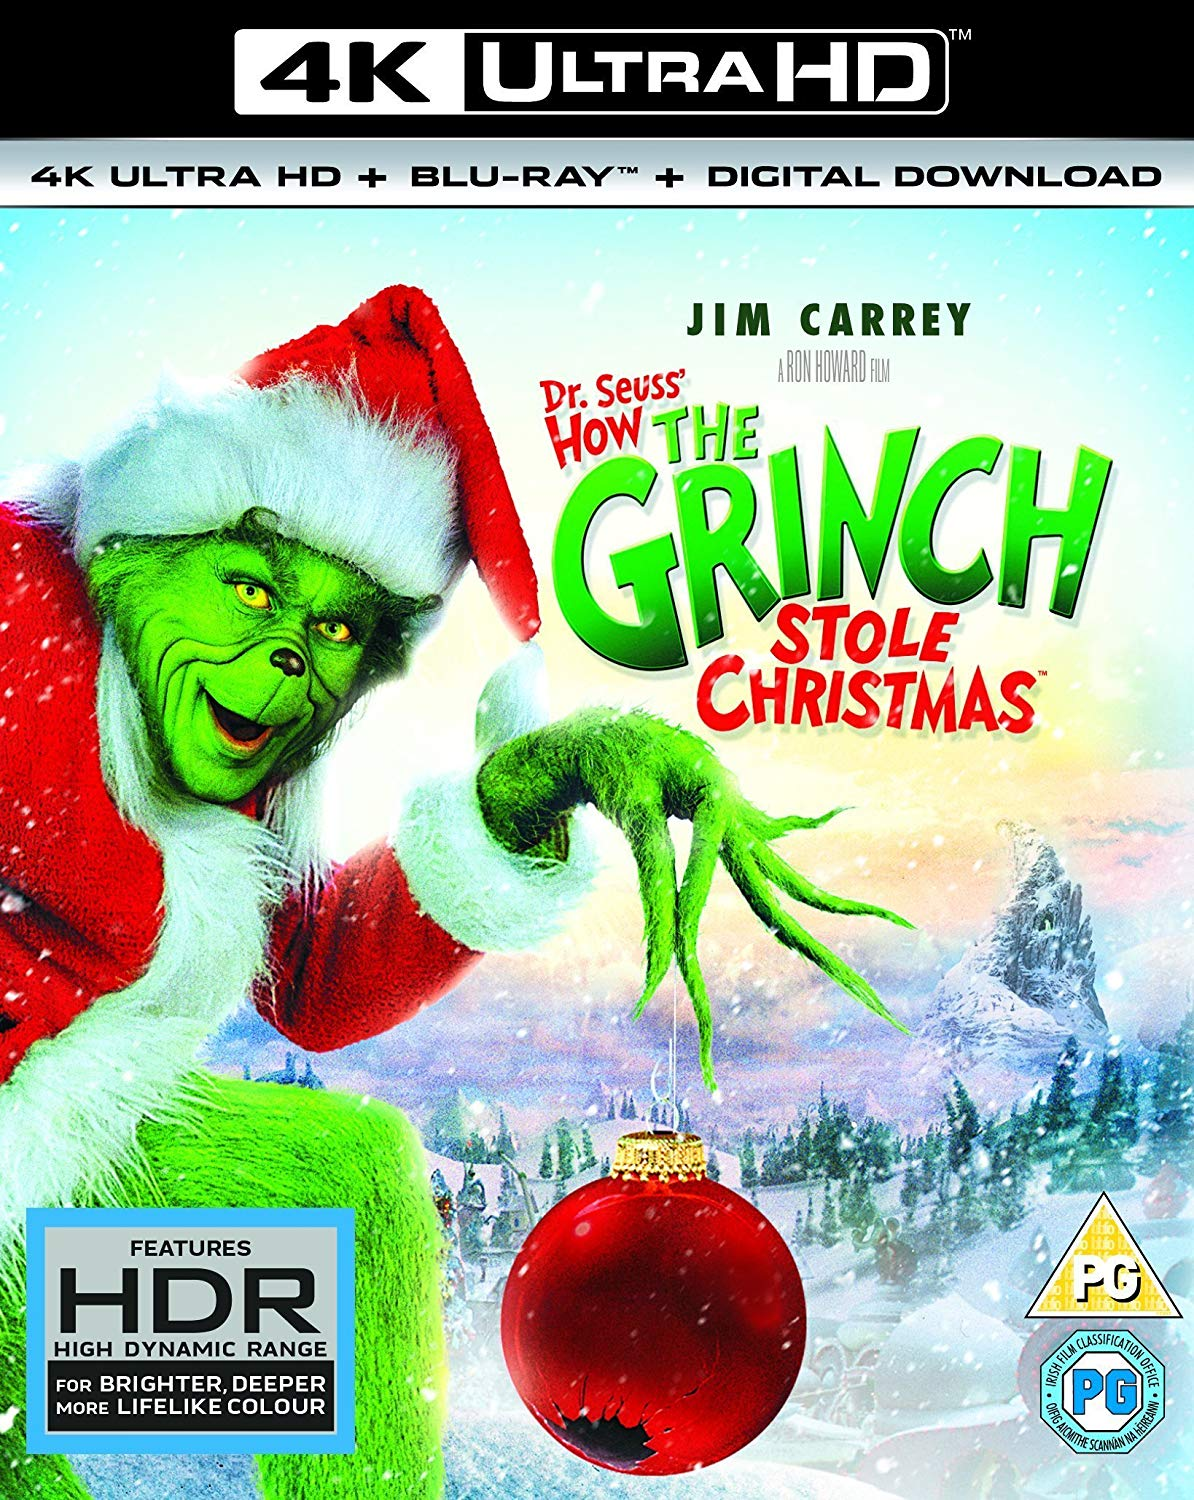 Dr. Seuss' How the Grinch Stole Christmas 4k